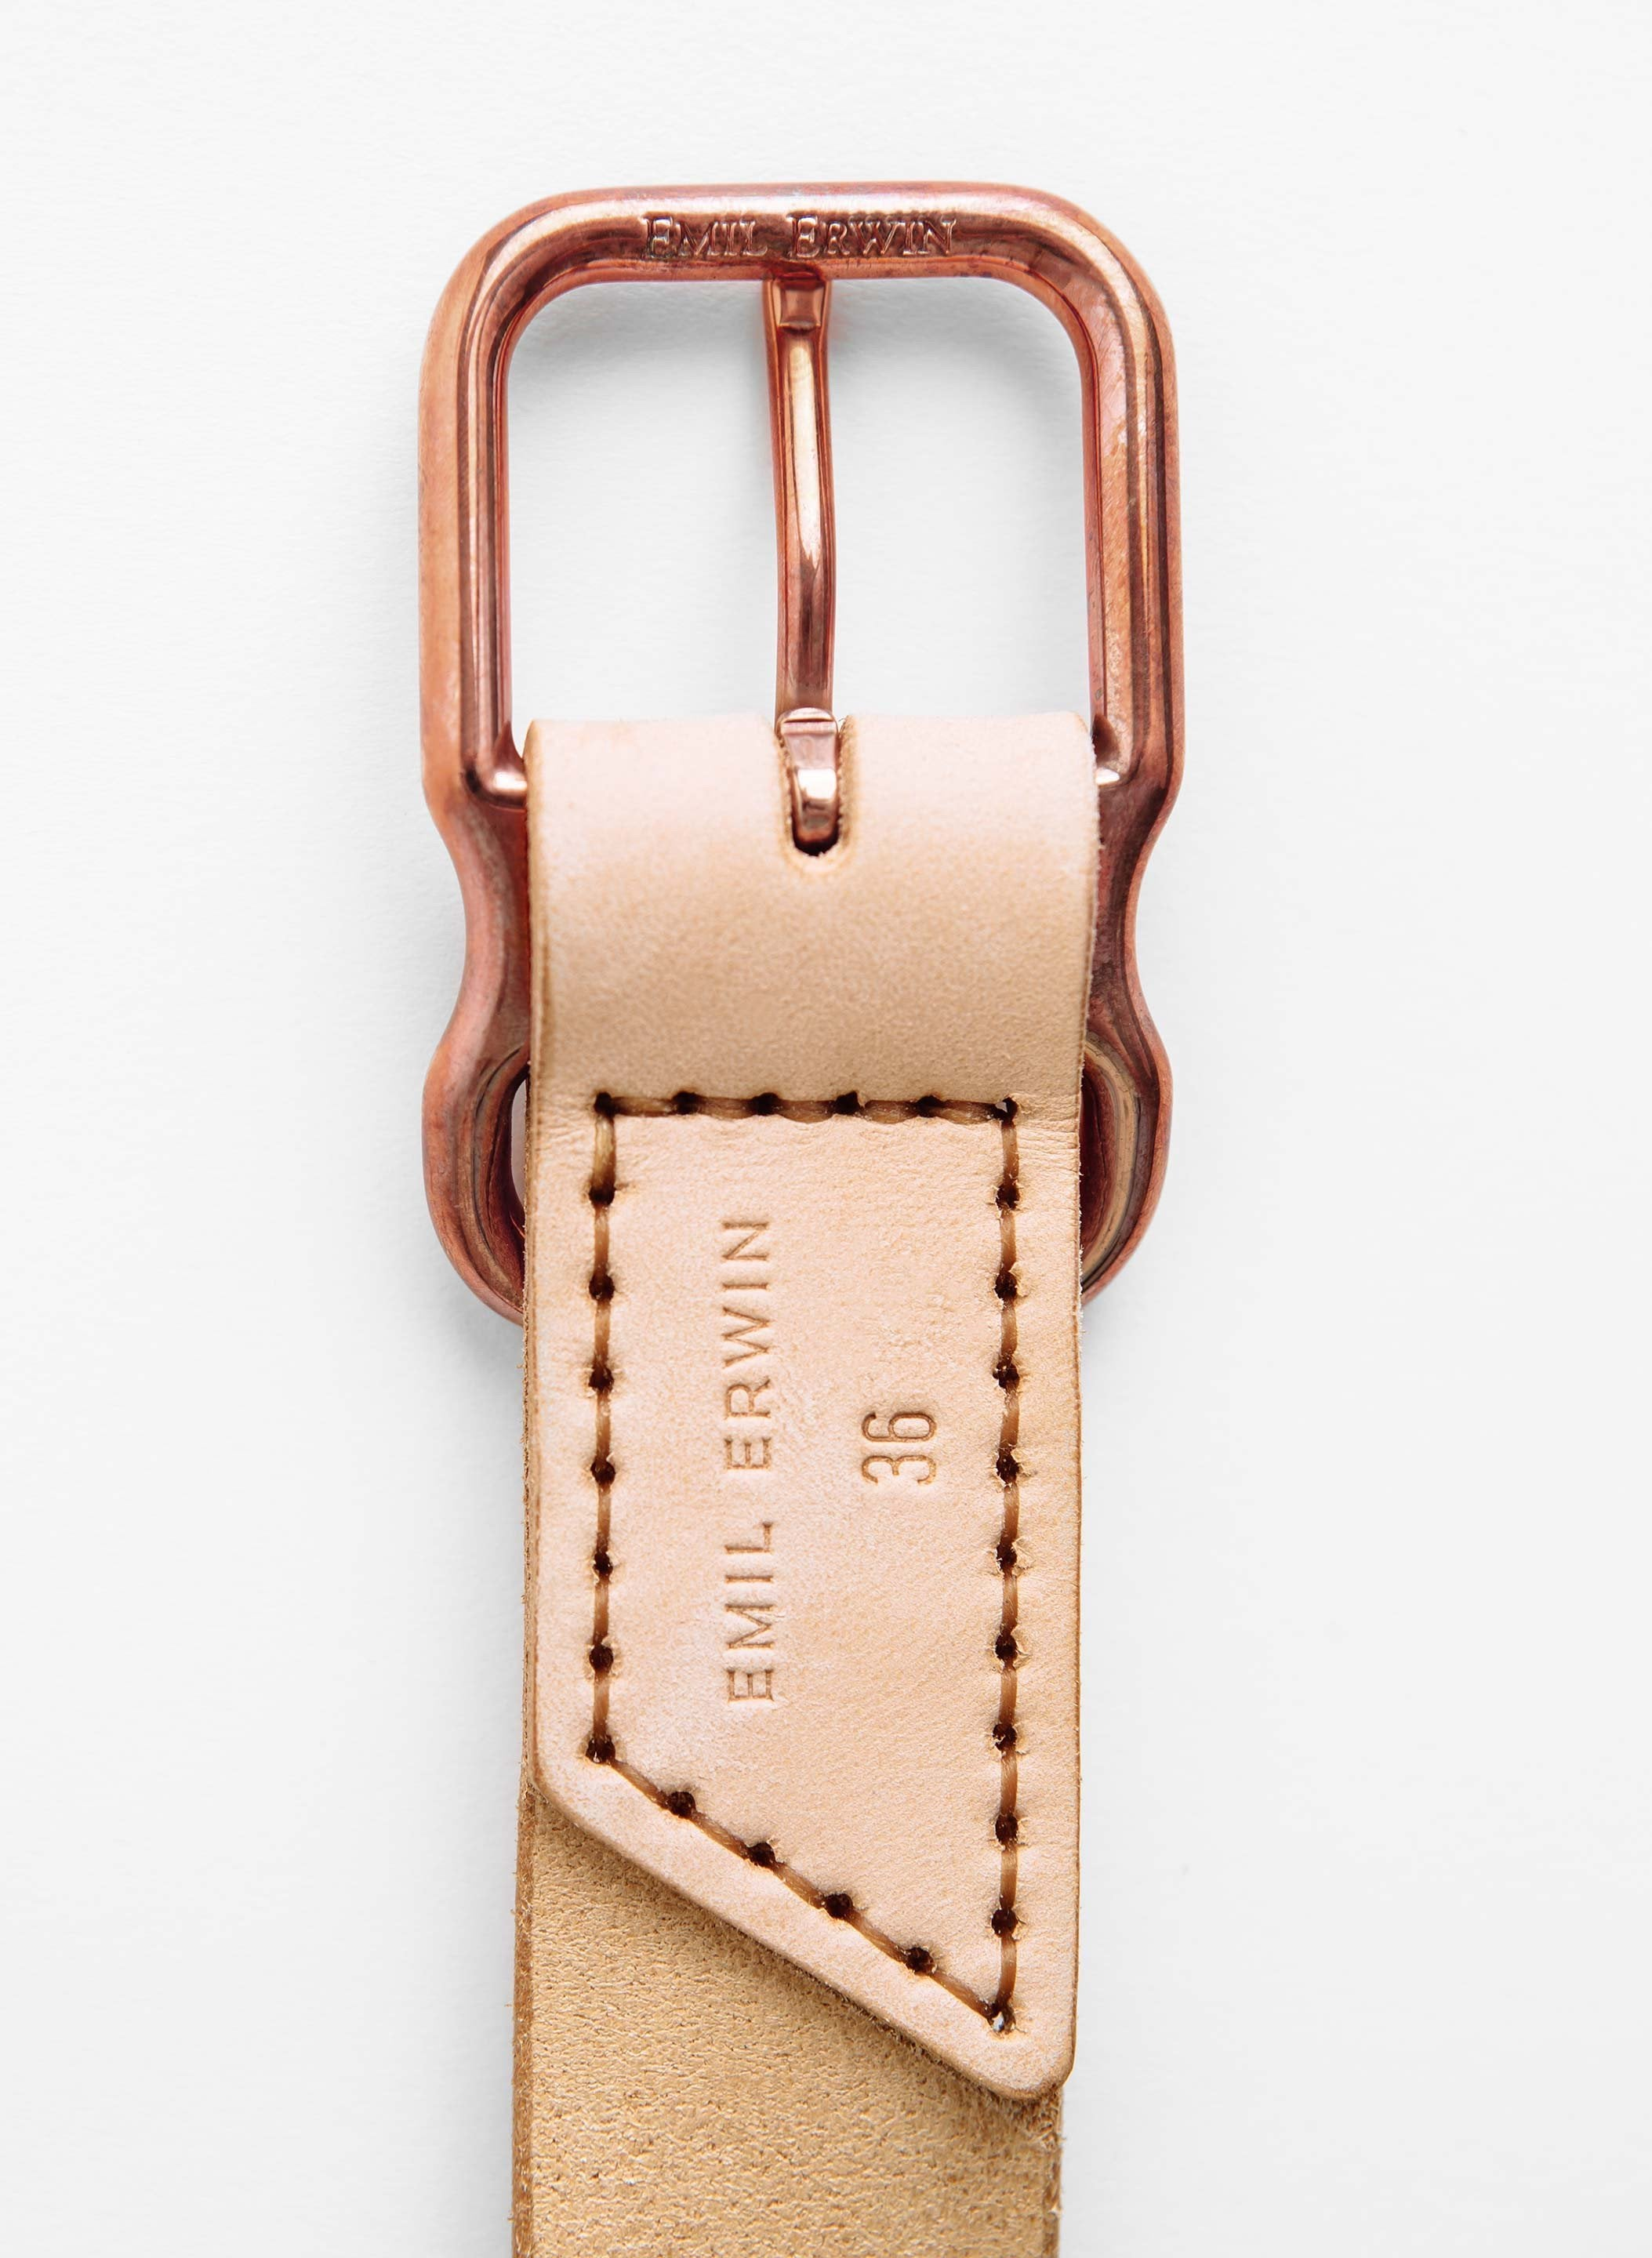 imogene + willie - Emil Erwin Signature Belt in Natural